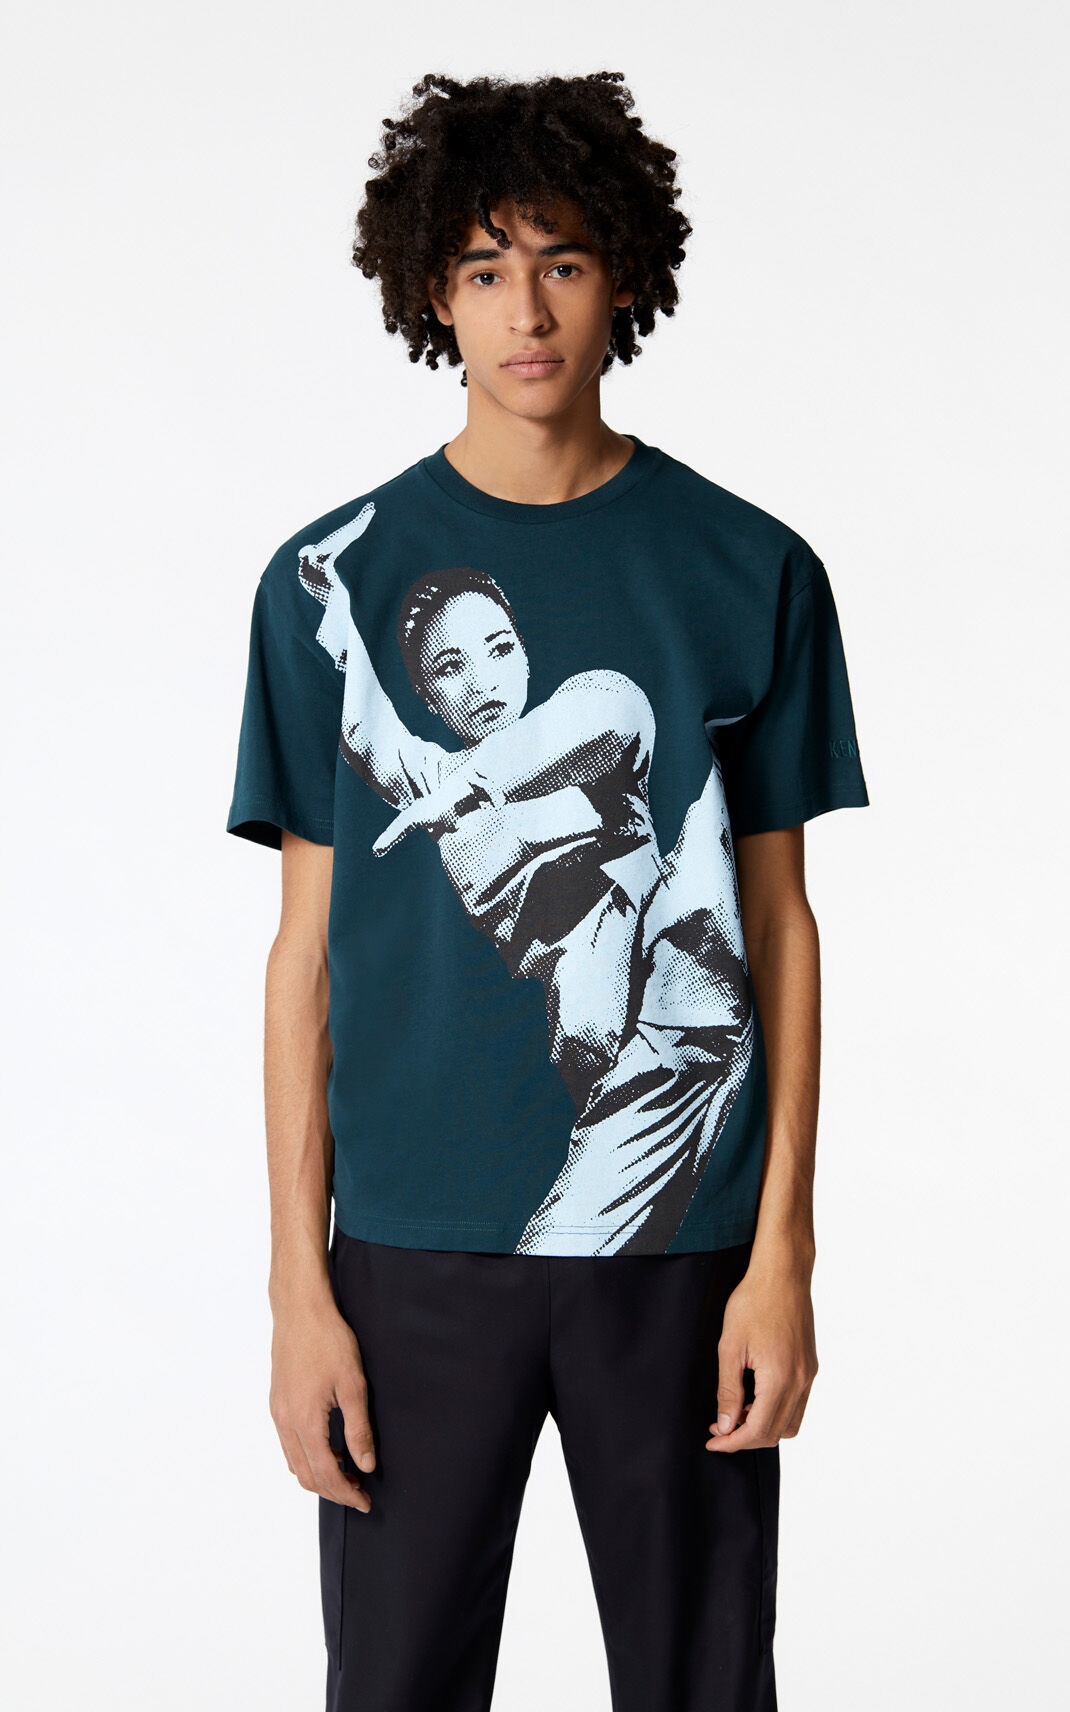 PINE 'Kung Fu' t-shirt for women KENZO